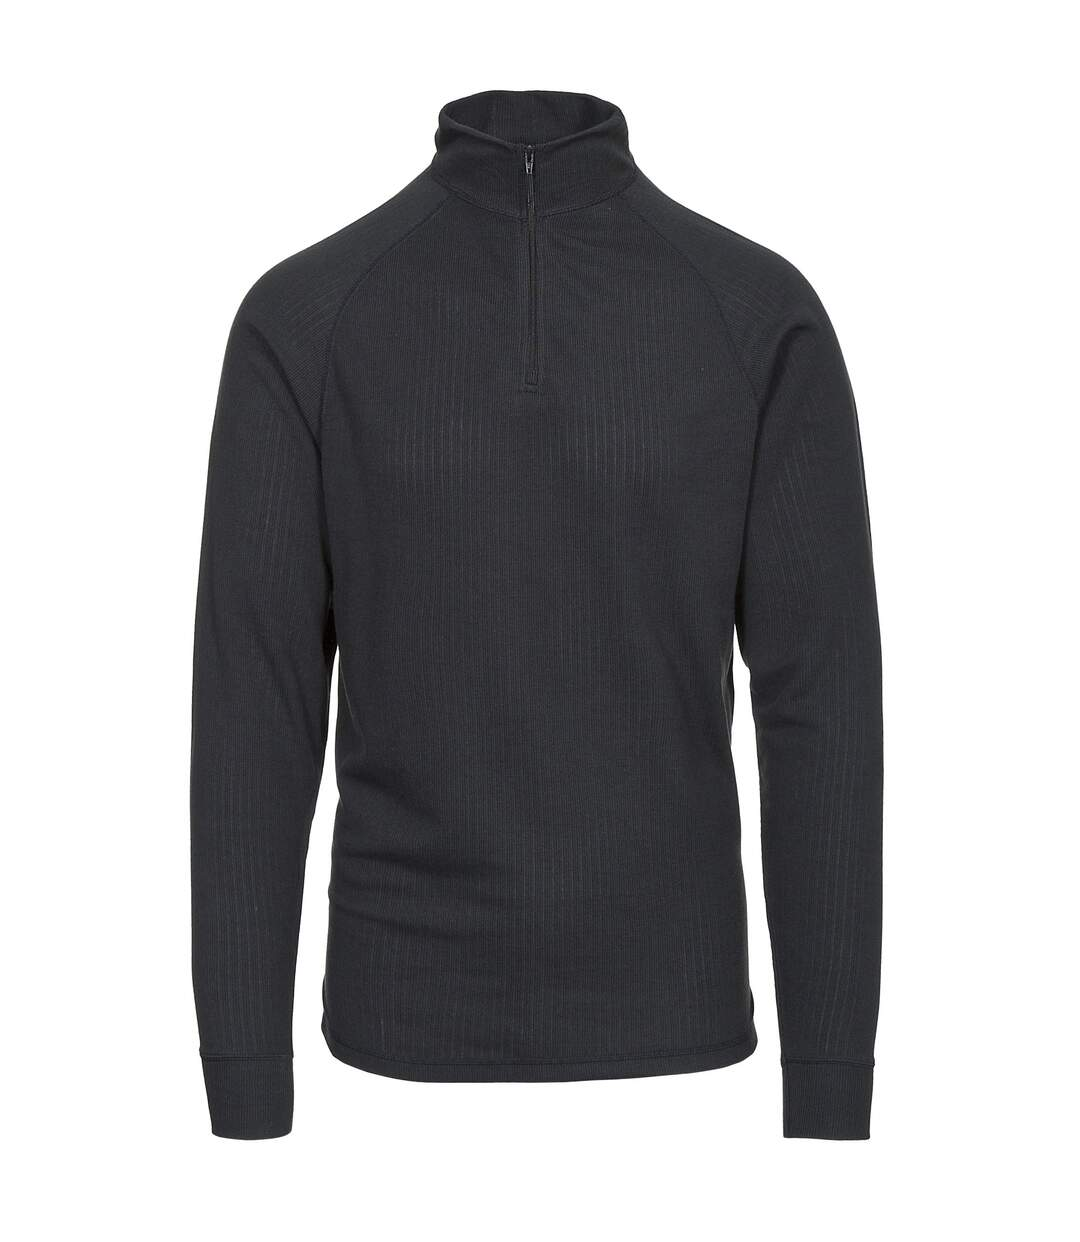 Trespass Adults Unisex Wise360 Quick Dry Base Layer Top (Black) - UTTP3853